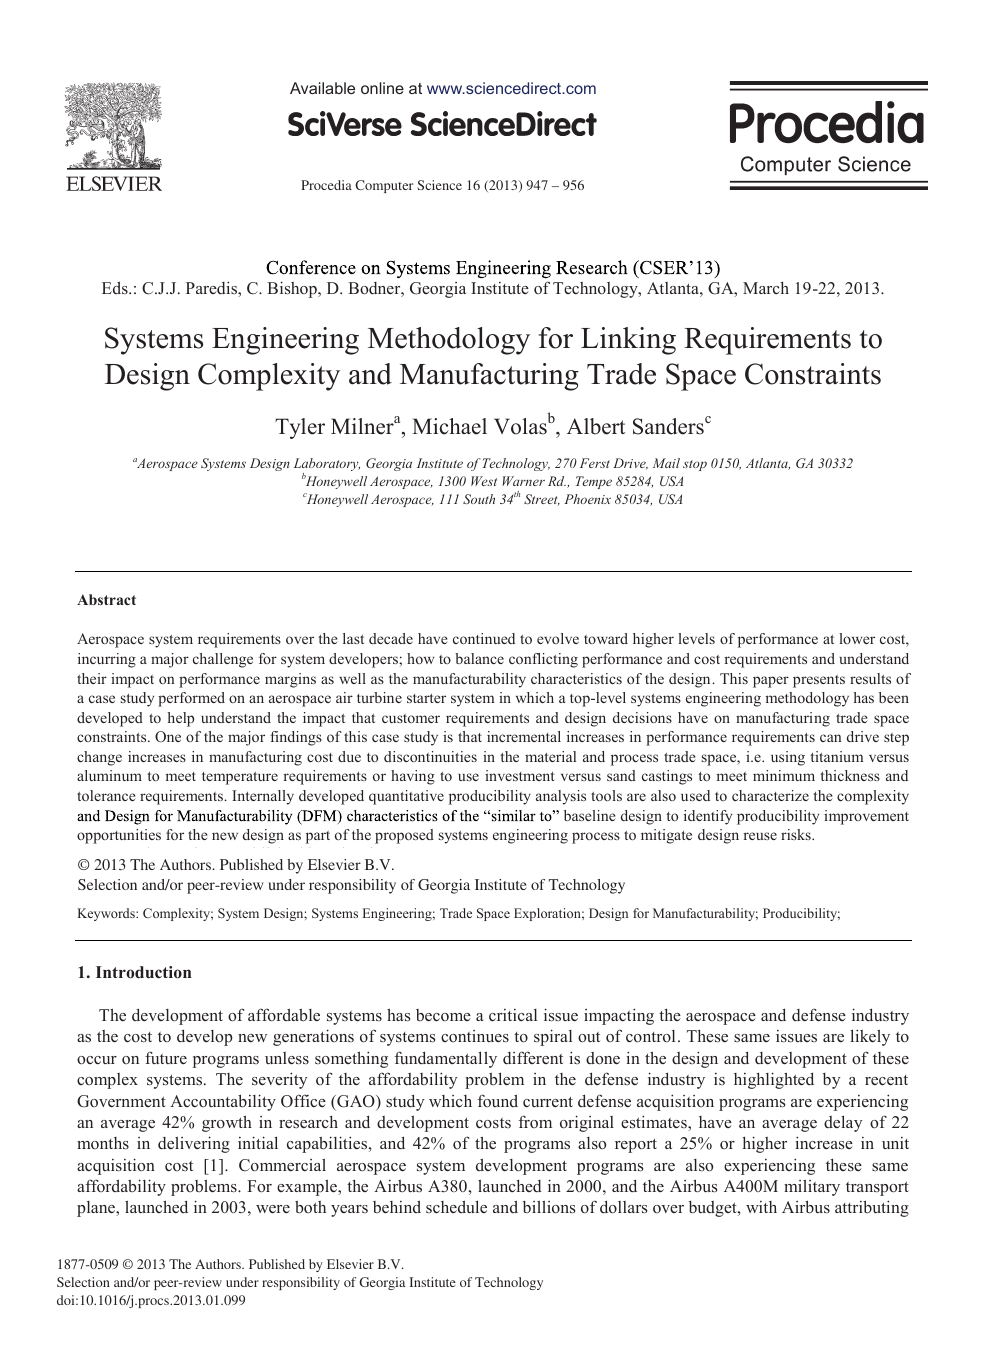 Systems Engineering Methodology for Linking Requirements to Design